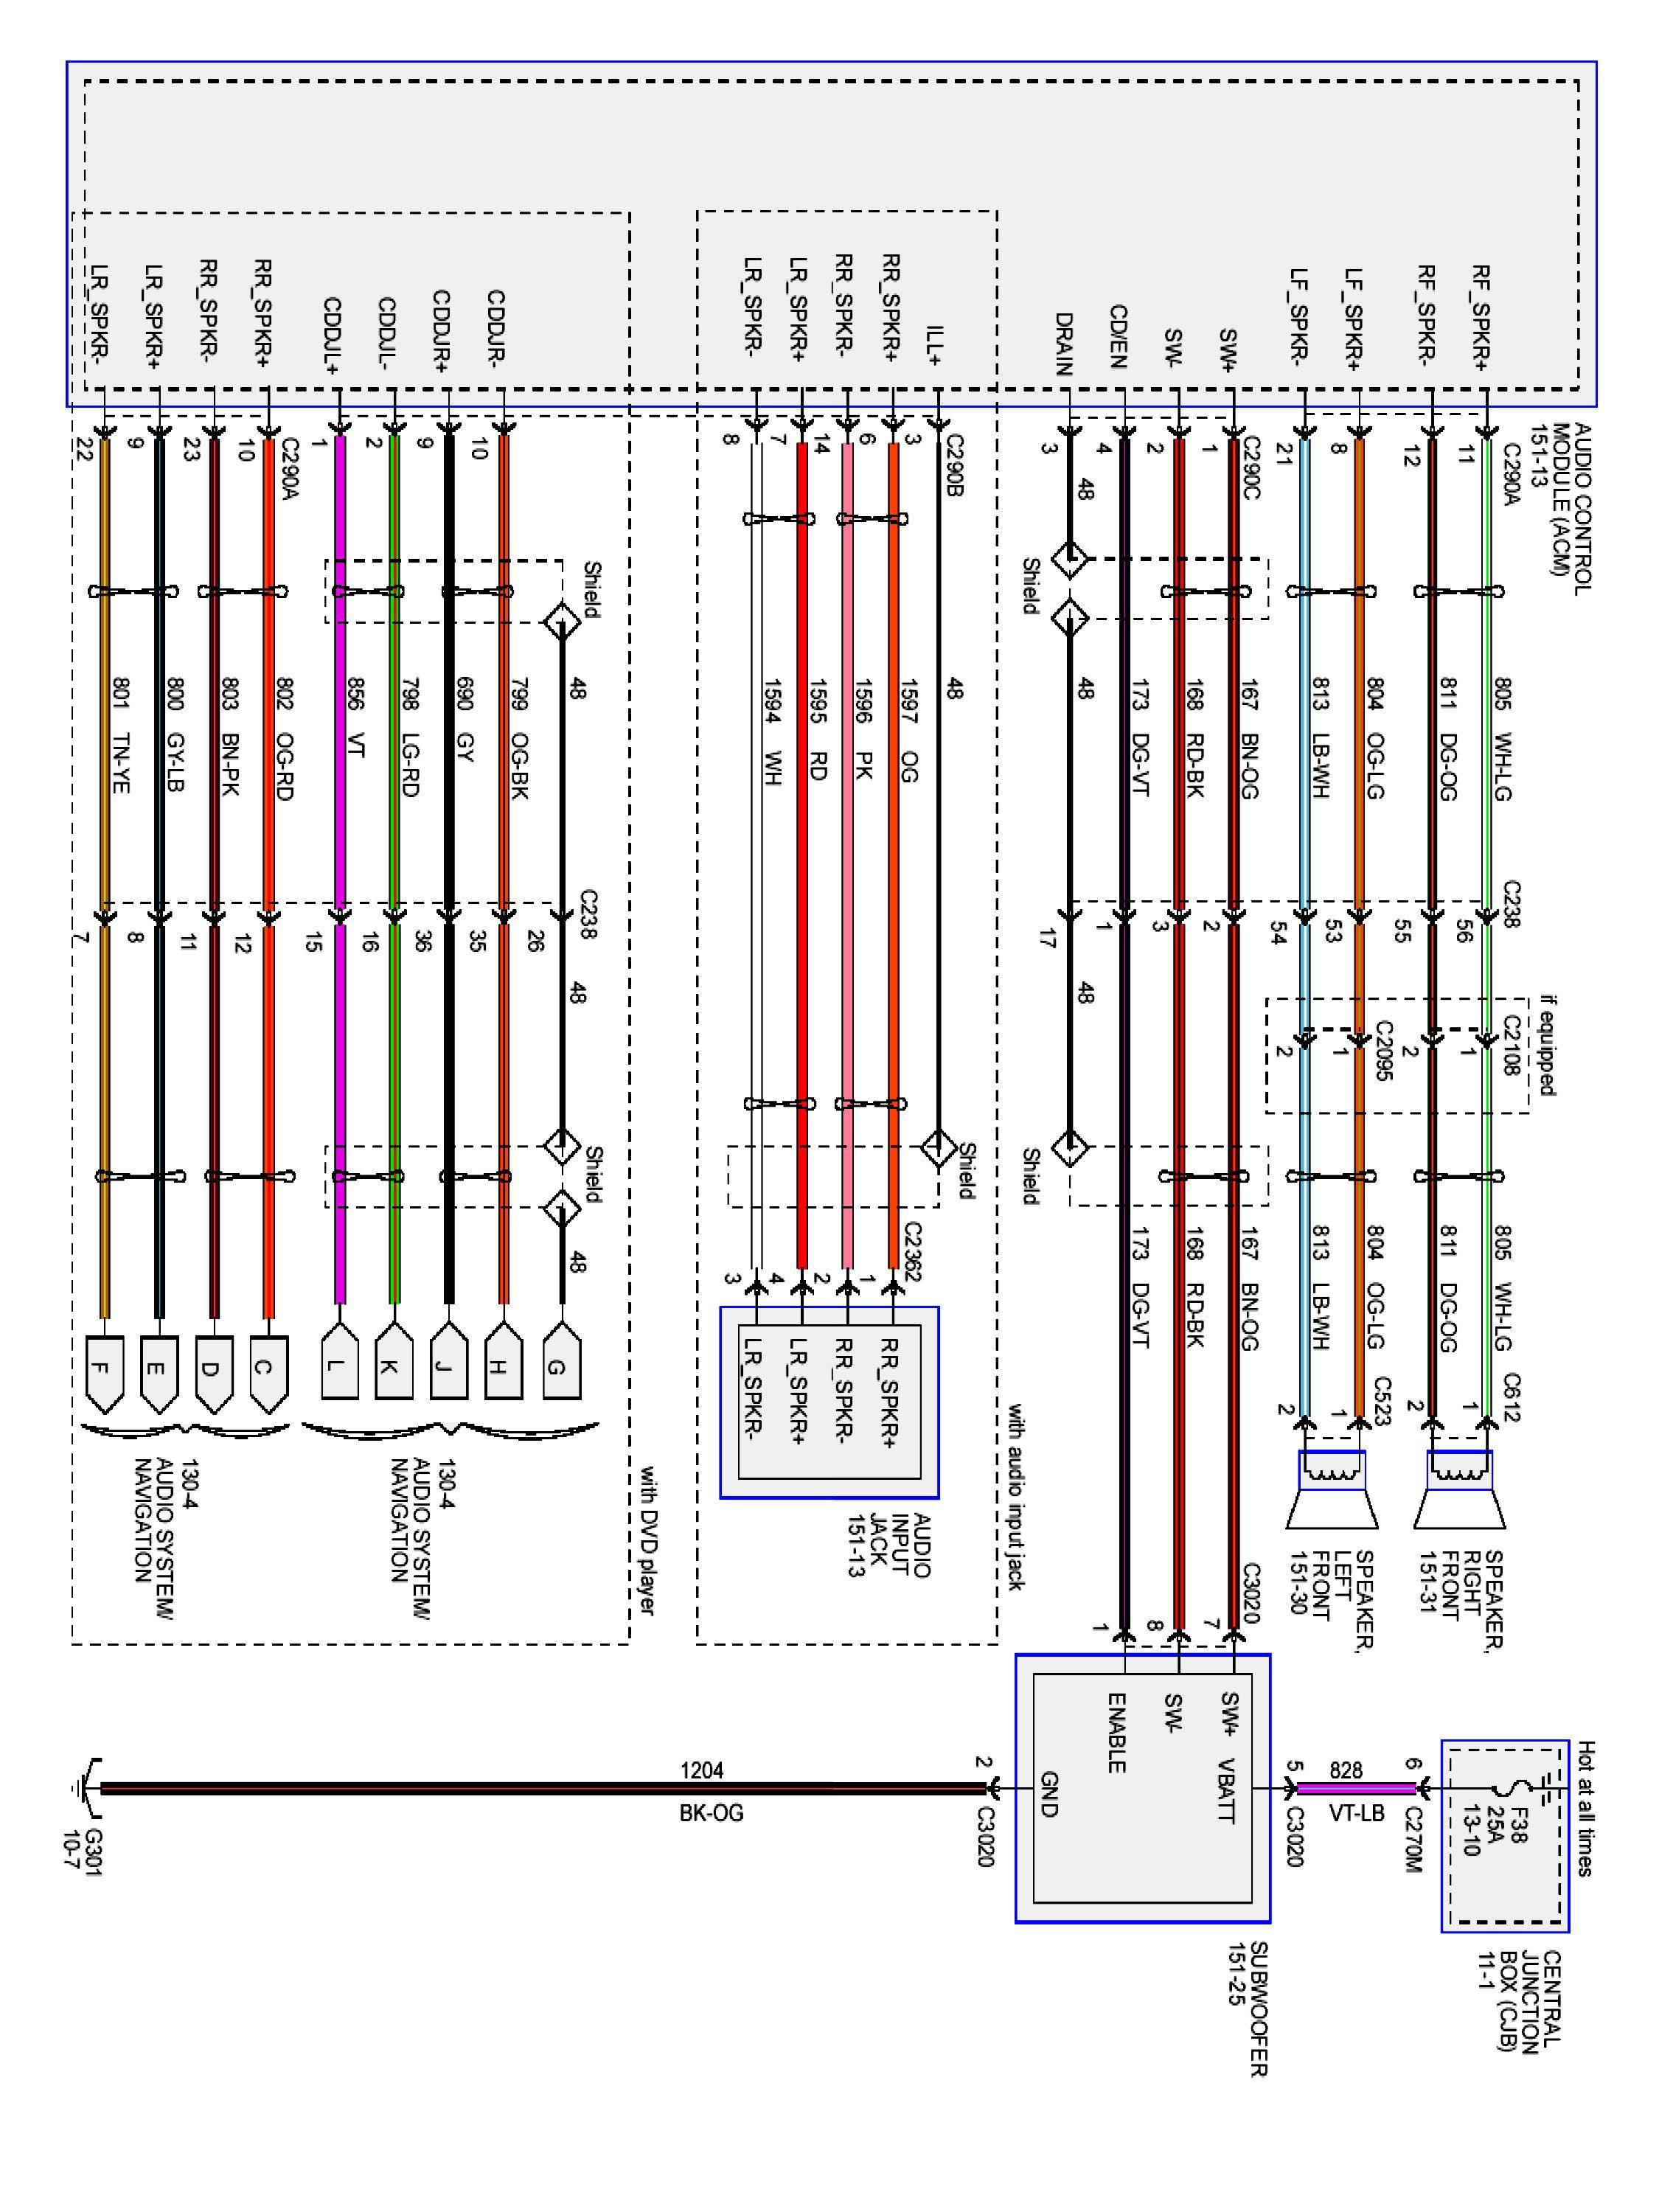 44 New 2004 ford F150 Radio Wiring Diagram | Ford expedition, Ford ranger,  2004 ford f150 | Ford F150 Radio Wiring Free Download |  | Pinterest